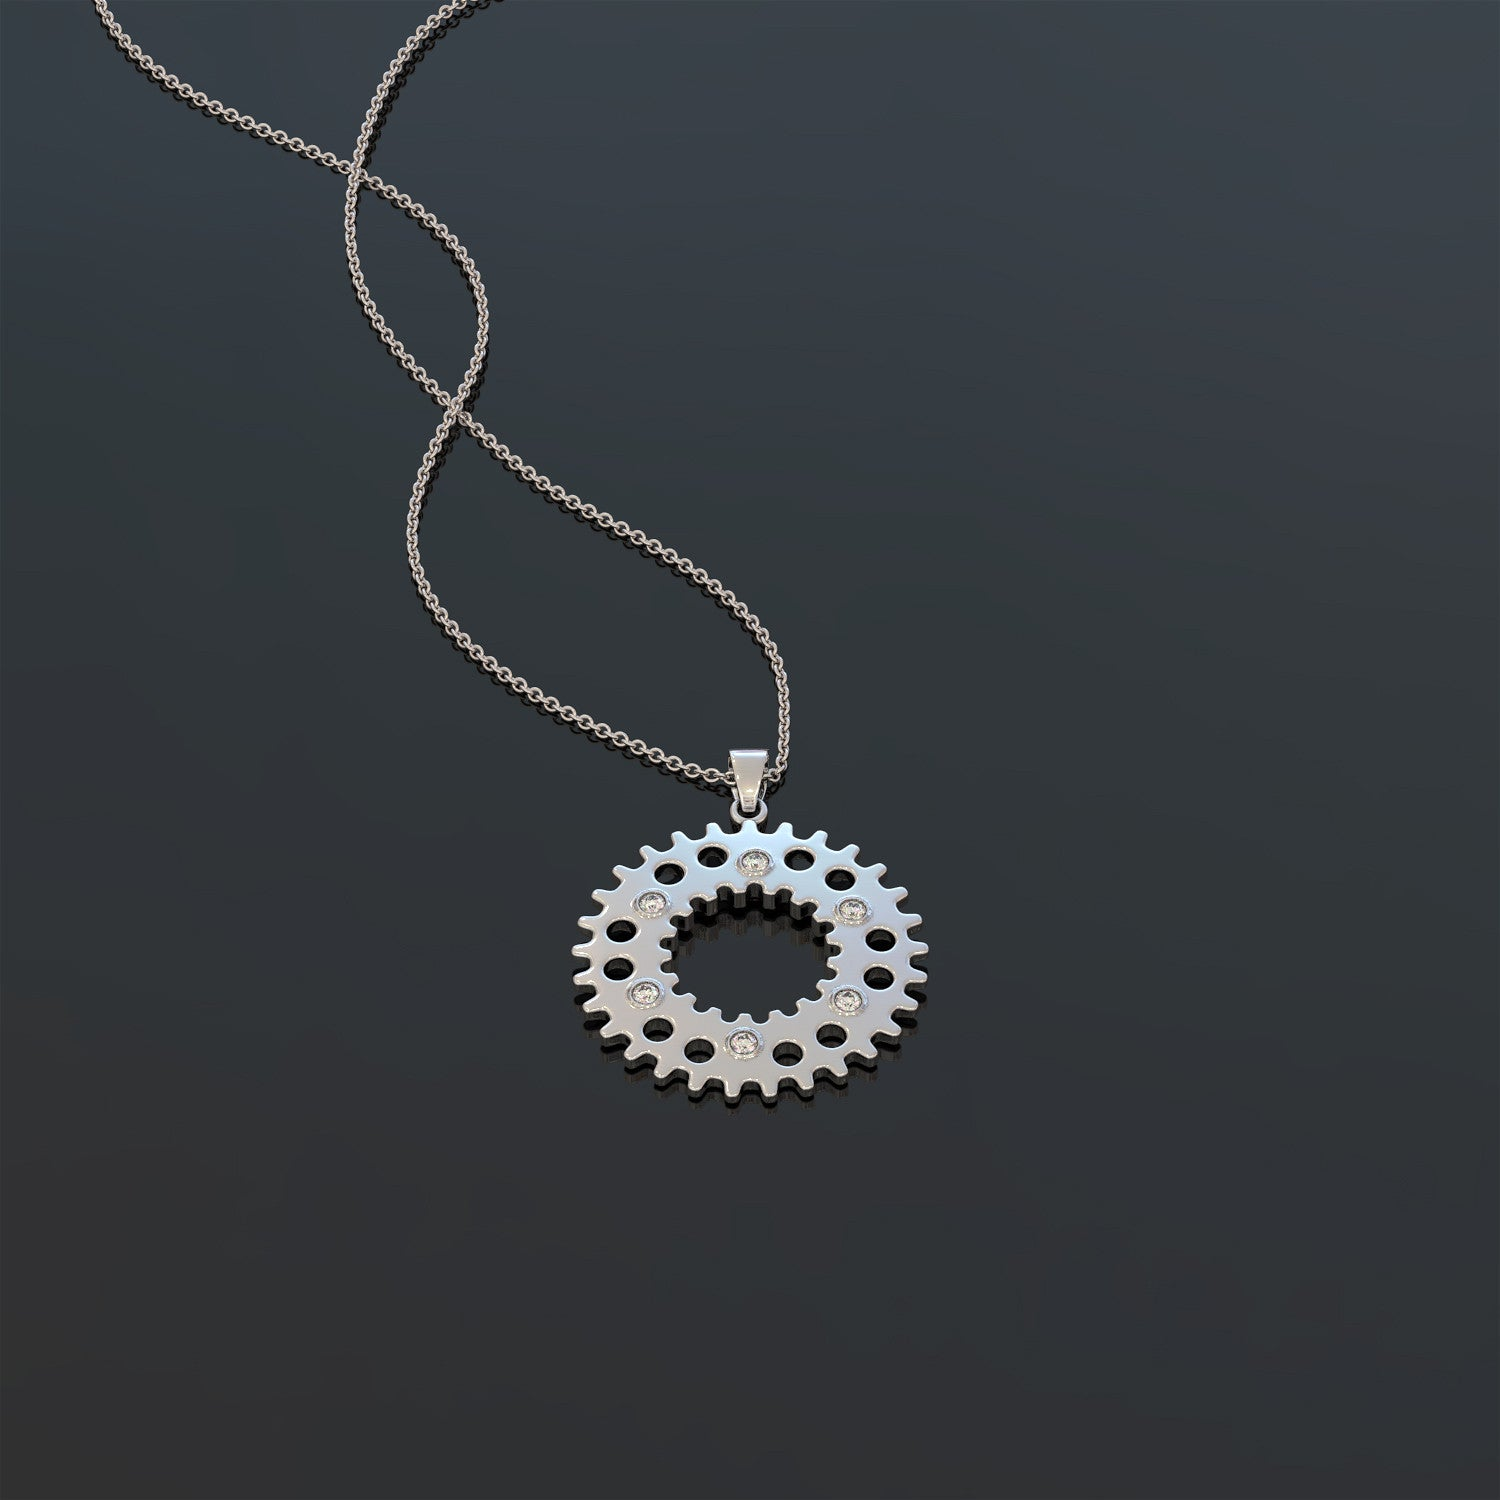 Motorcycle sprocket necklace